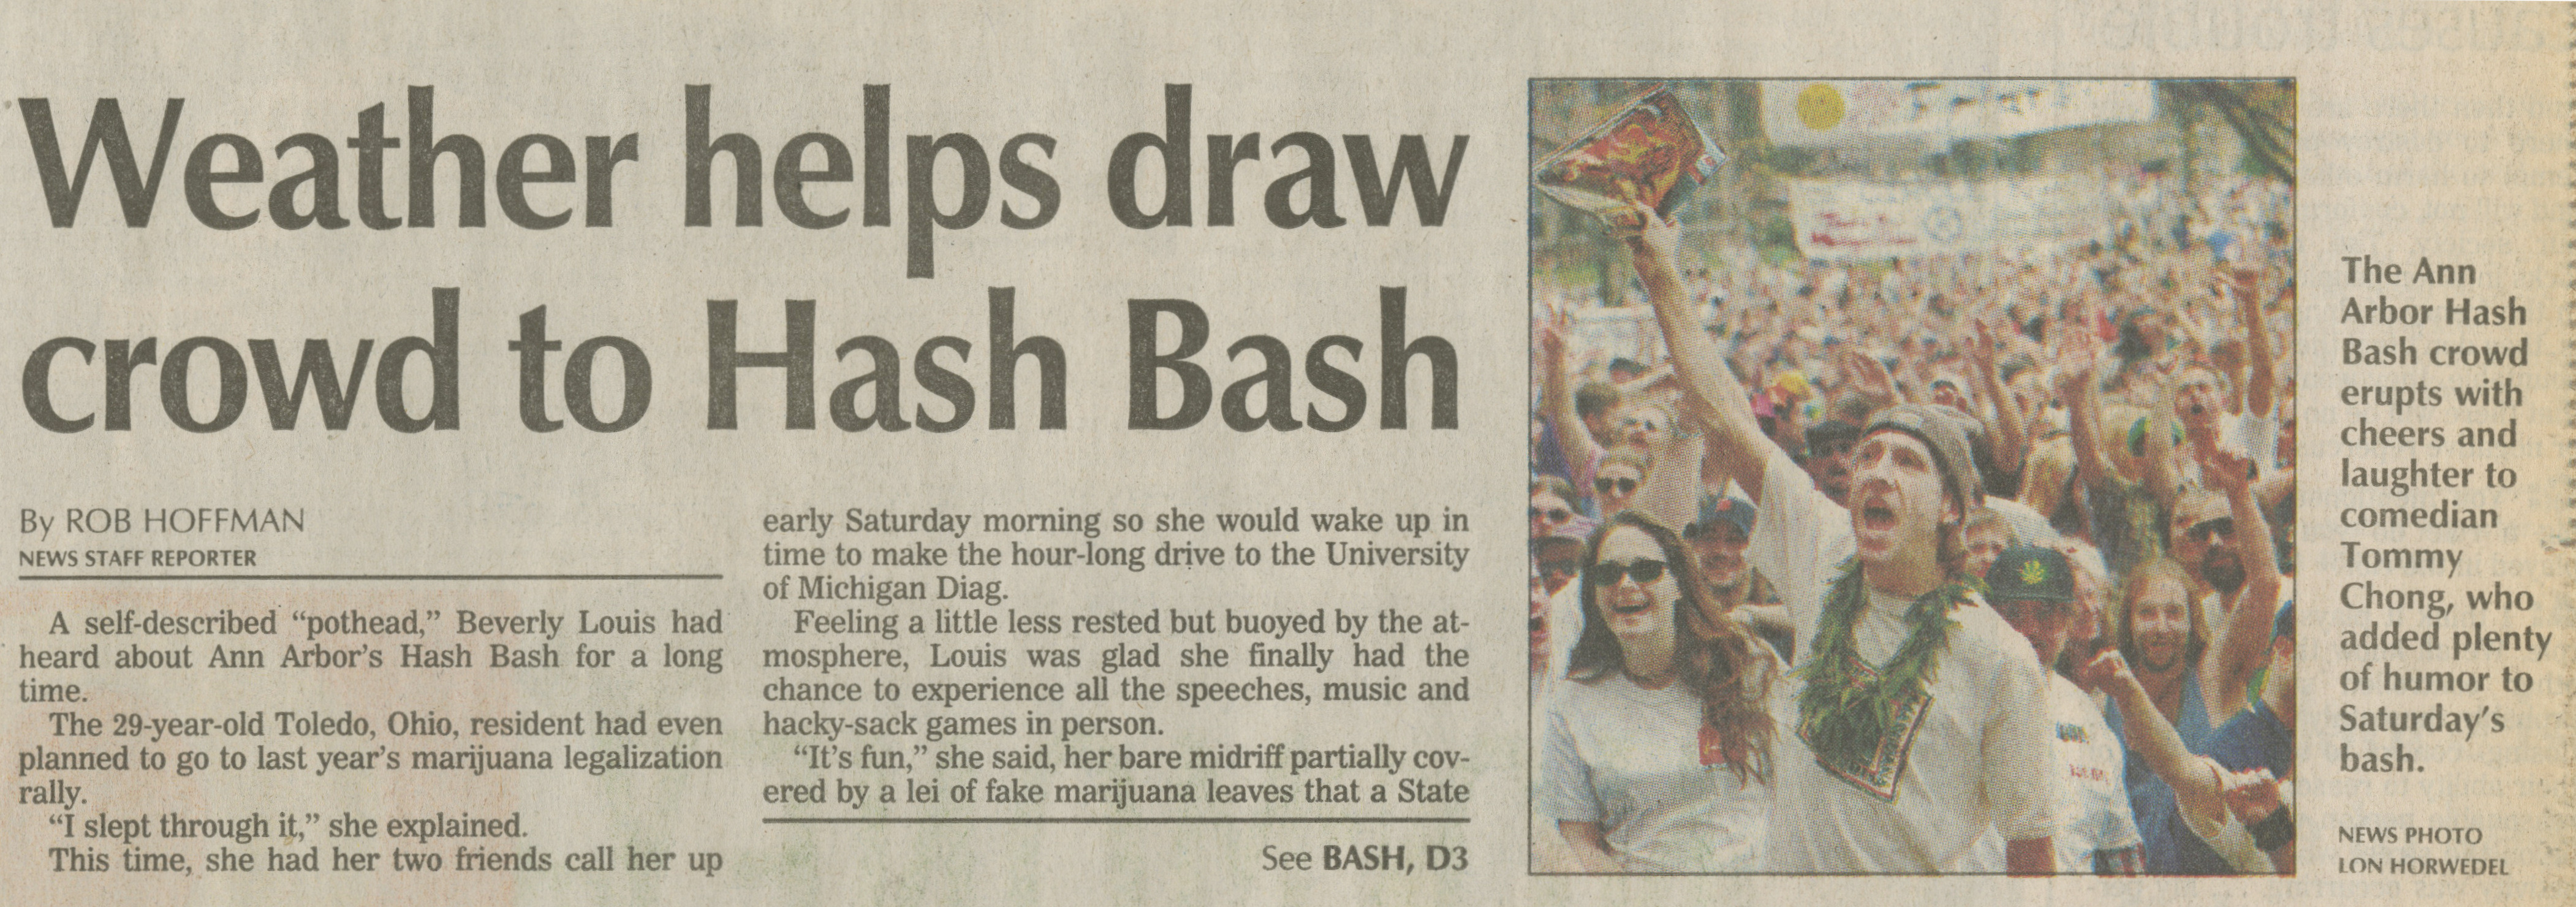 Weather Helps Draw Crowd To Hash Bash image